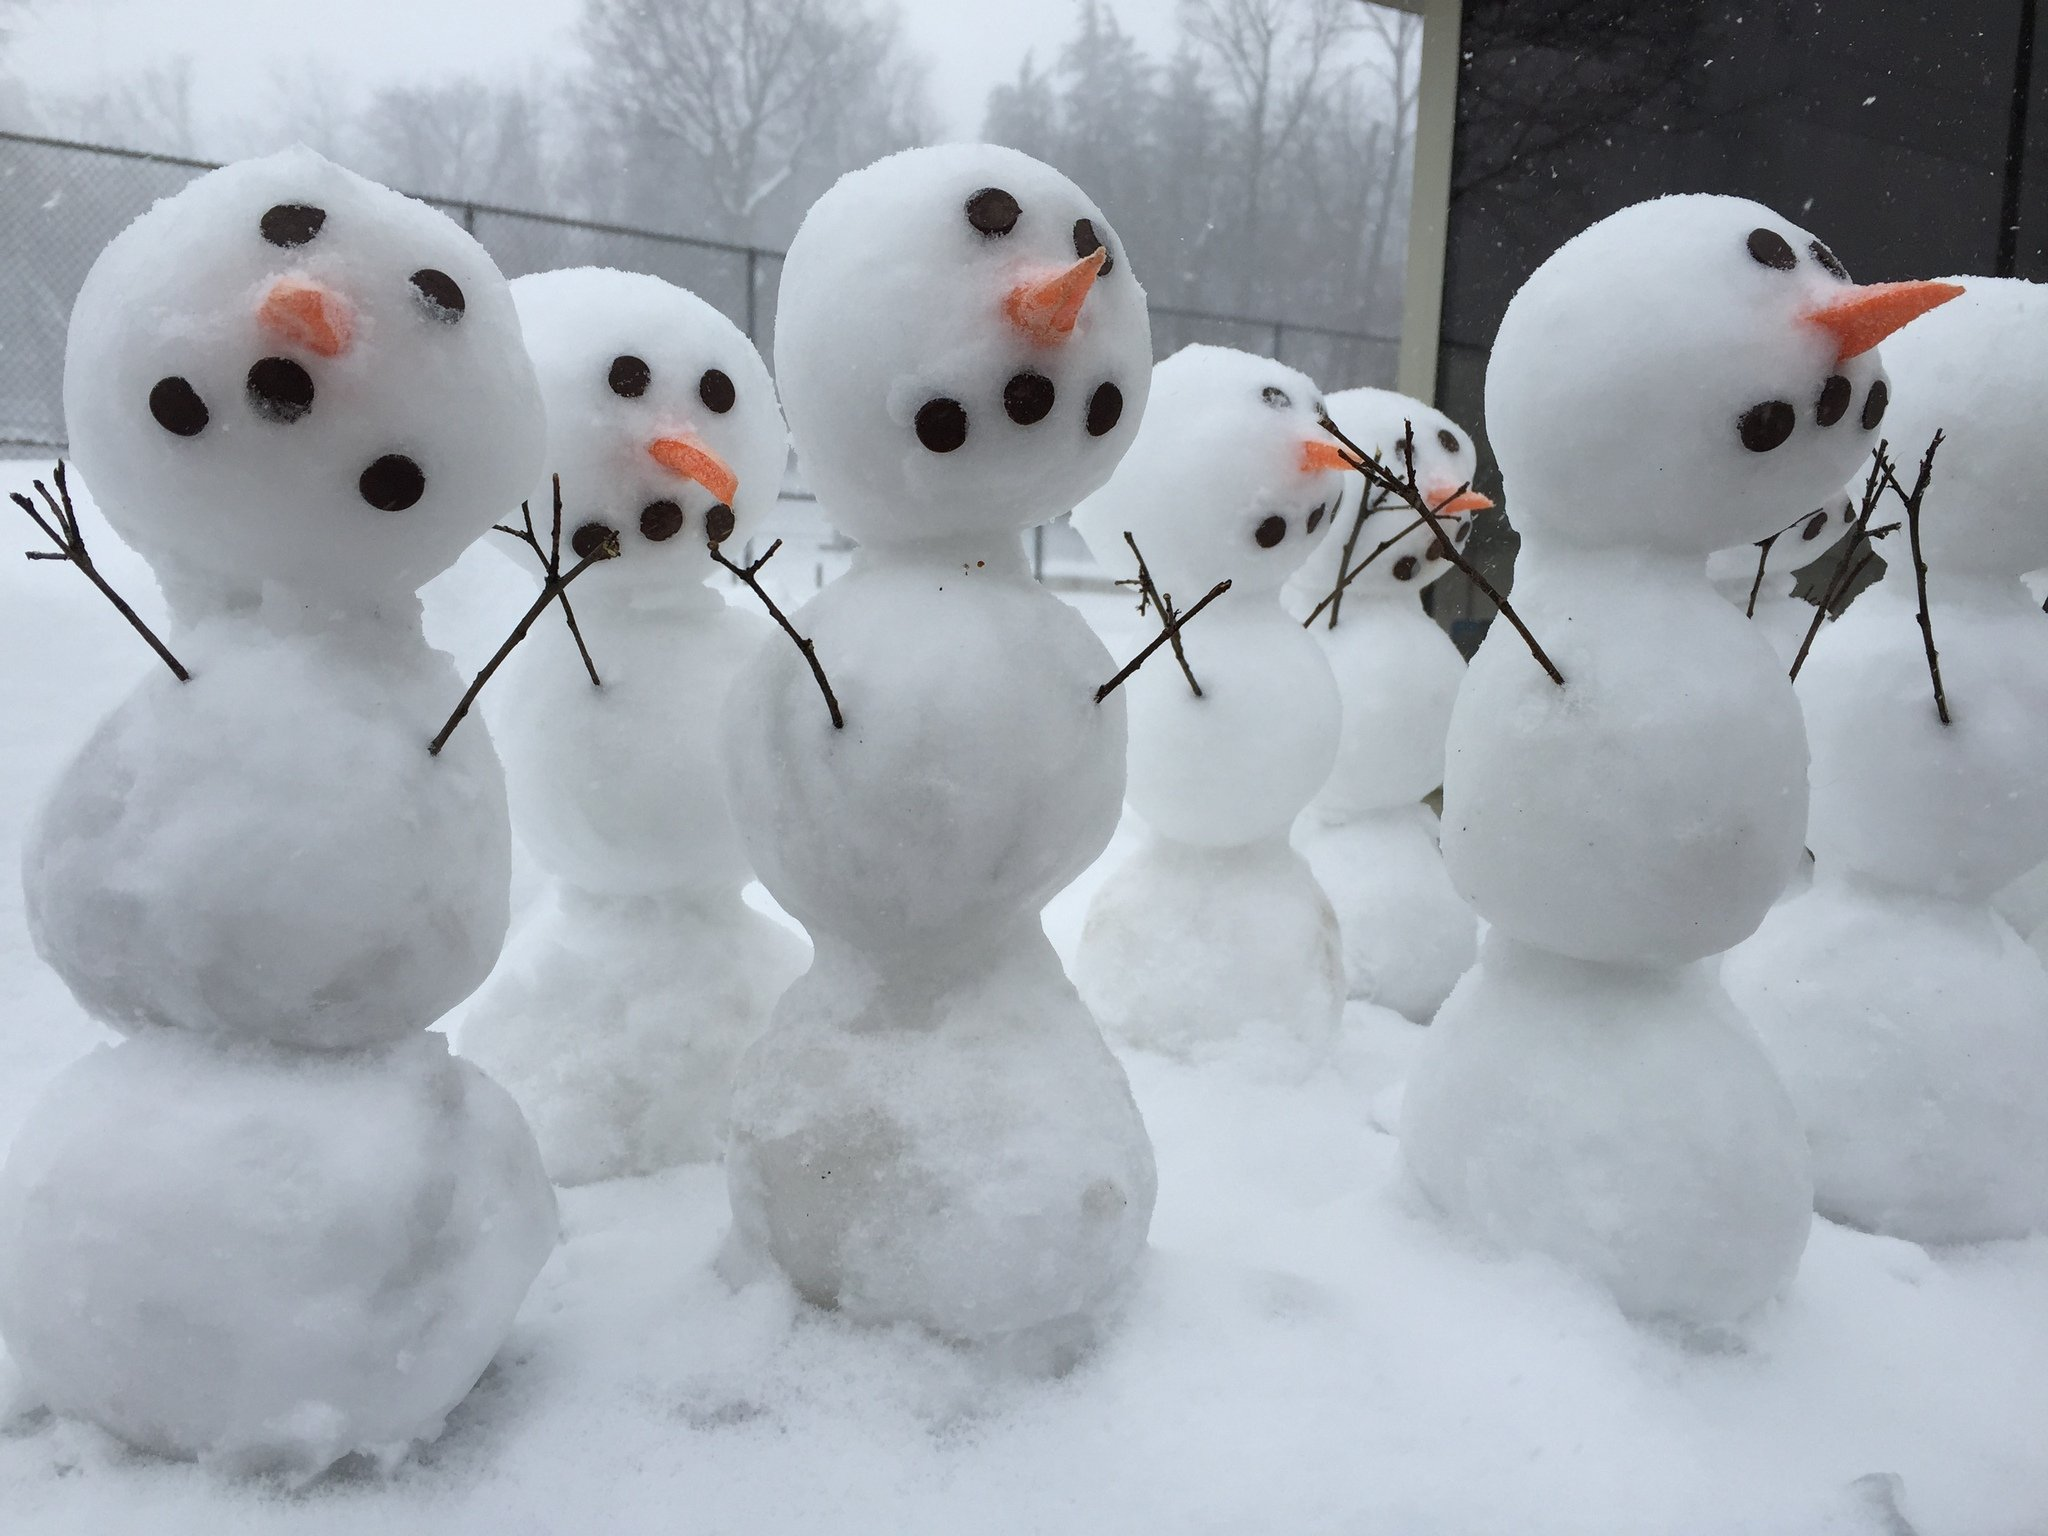 With weather this miserable, even the snowmen are surrendering ...